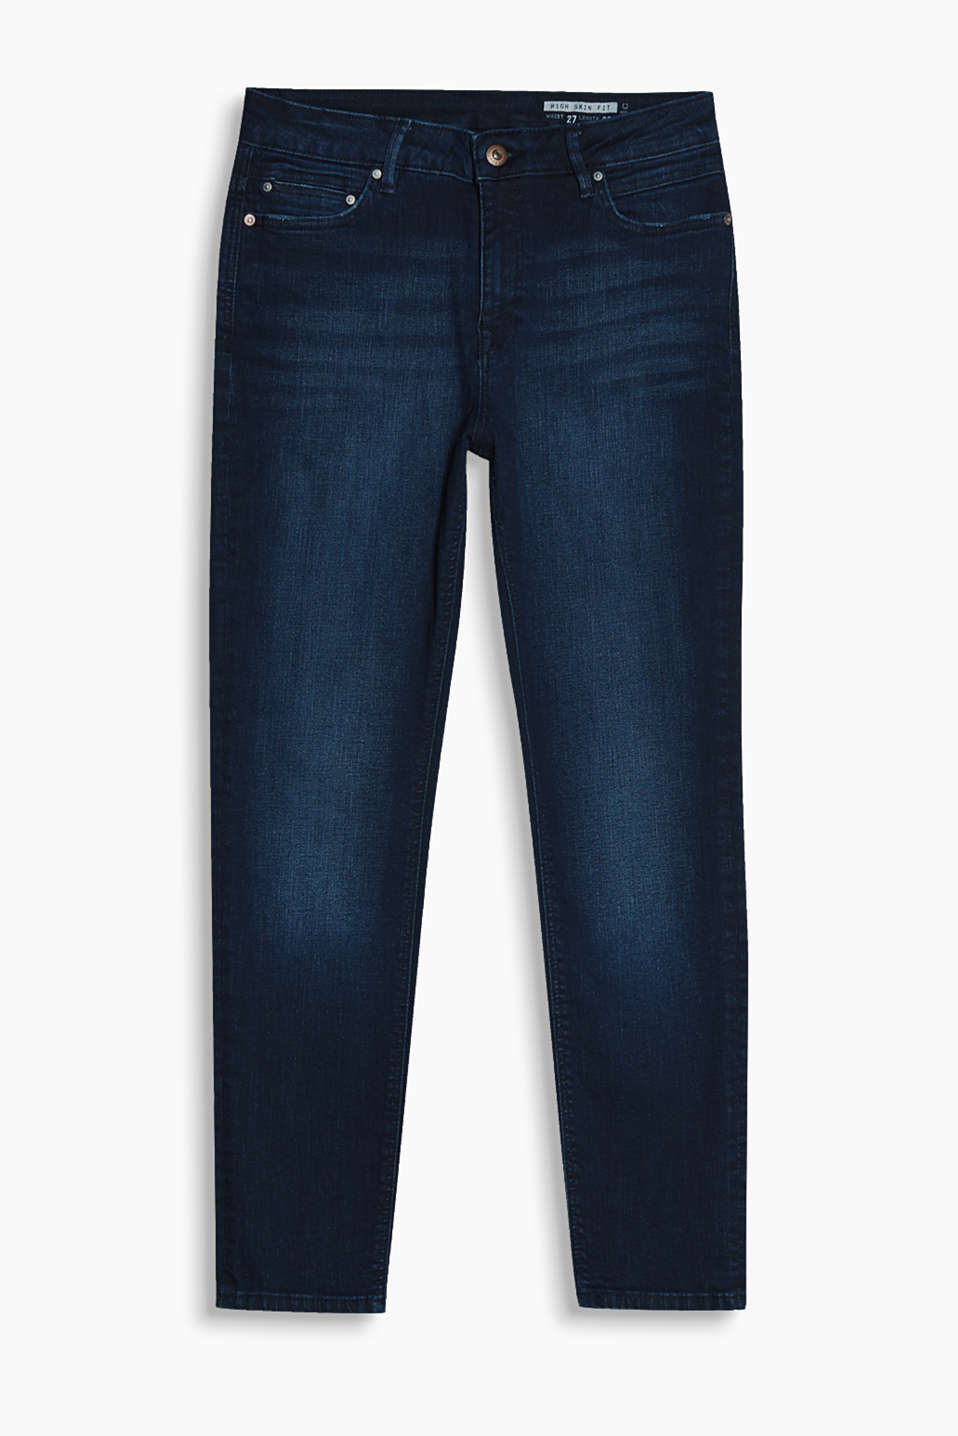 Cropped jeans in dark blue cotton denim with added stretch for comfort and a garment-washed finish